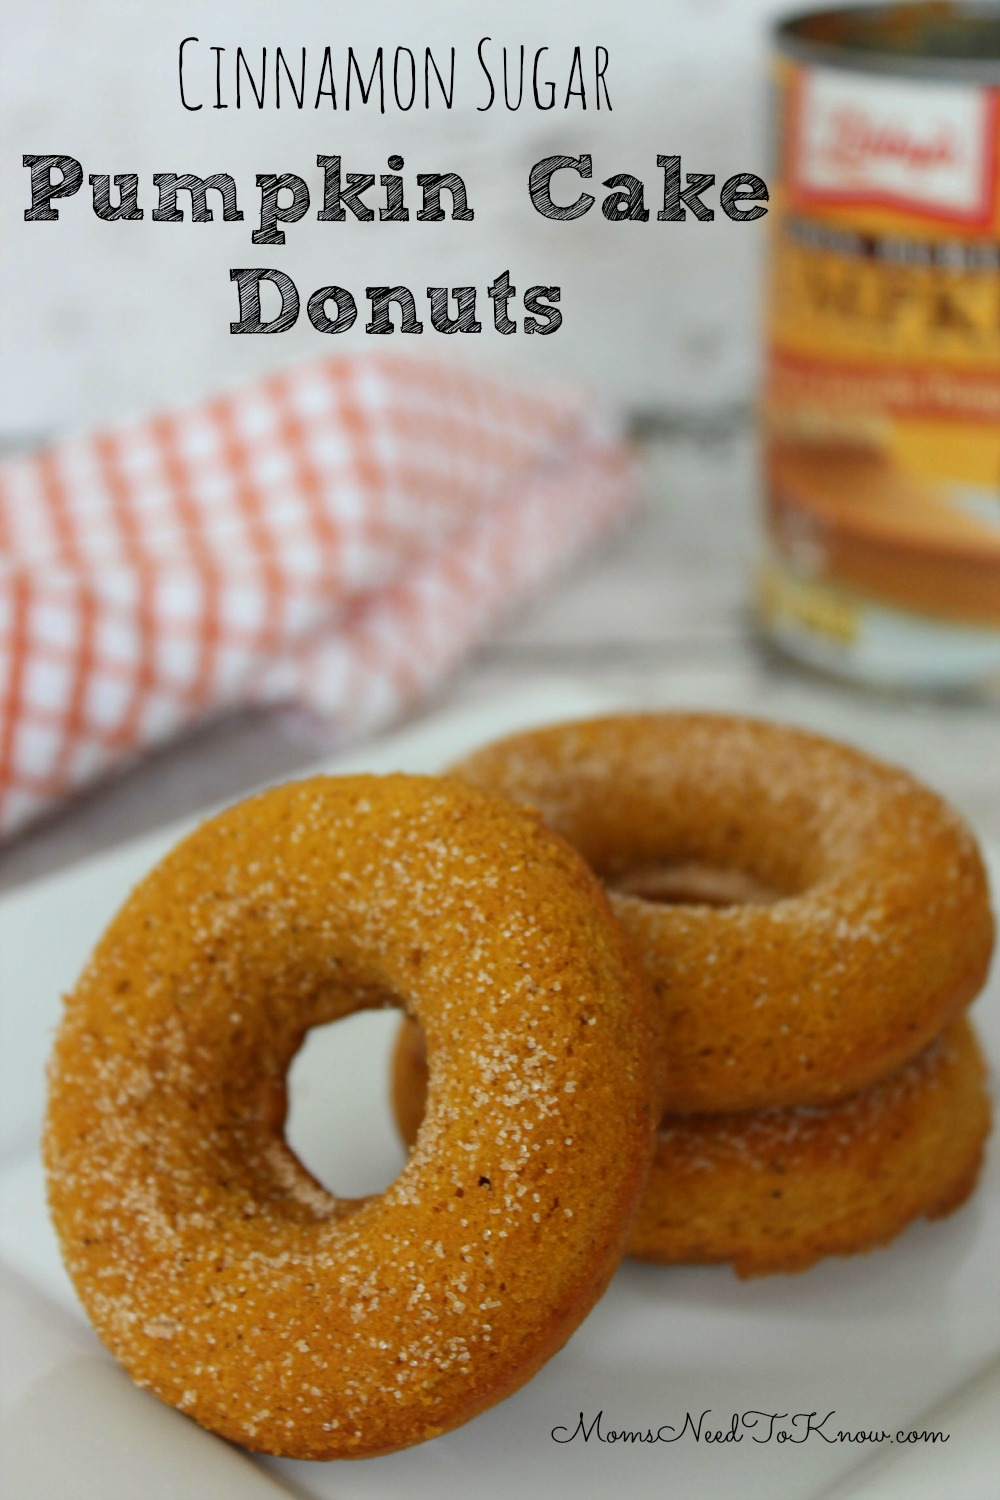 Pumpkin Cake Donuts with Cinnamon and Sugar | Moms Need To Know ™